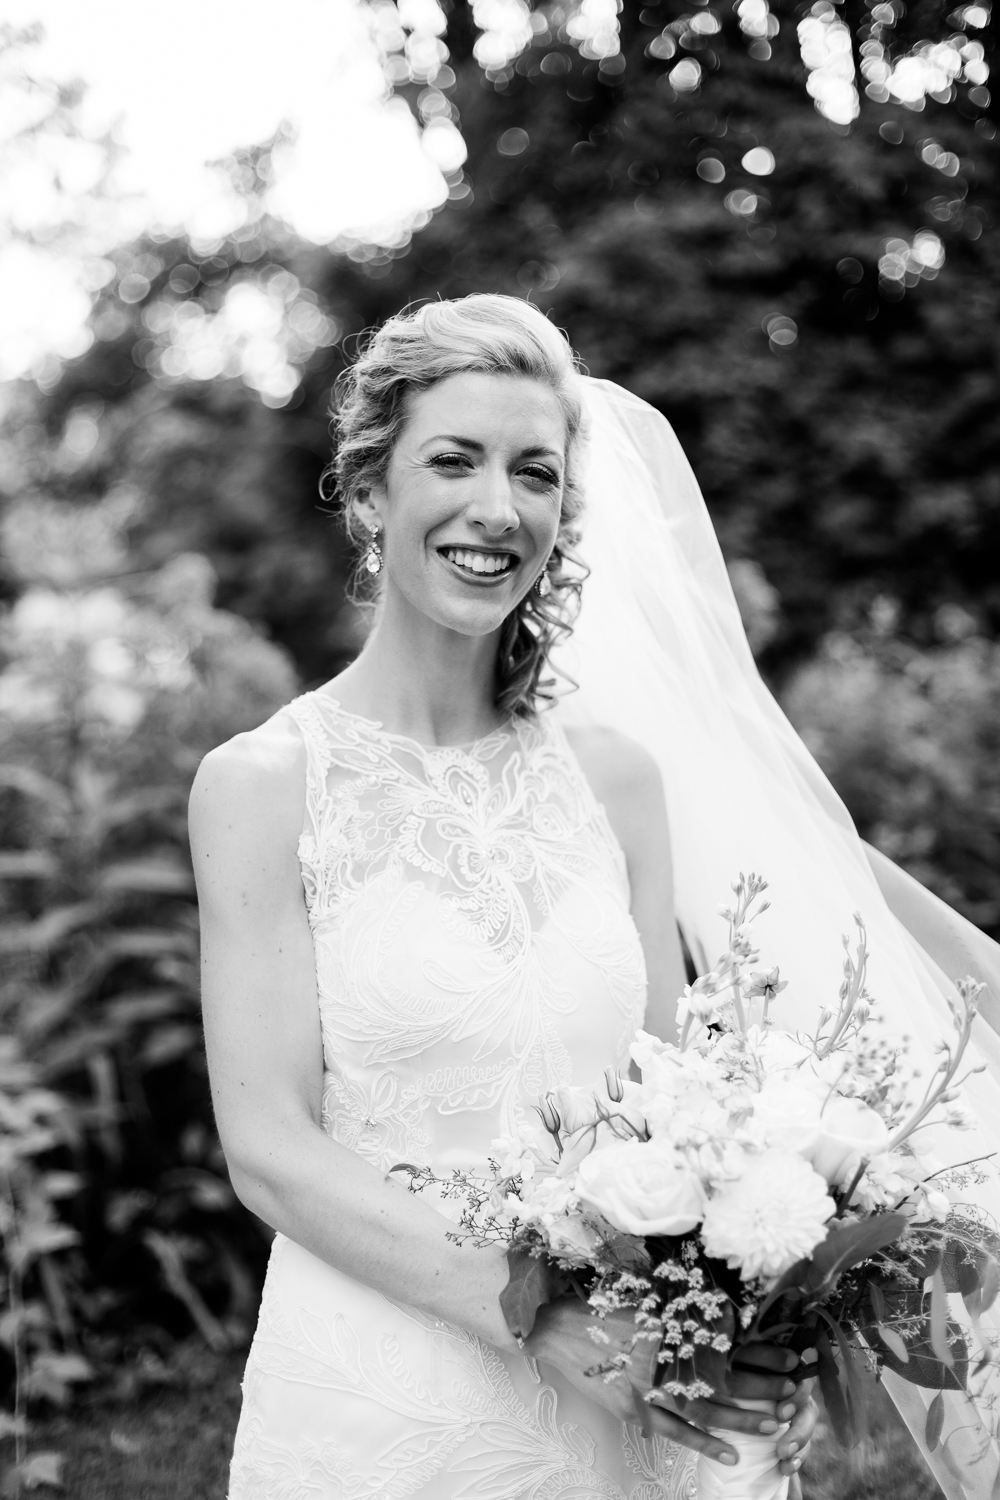 the bride smiles wide in a black and white photograph.